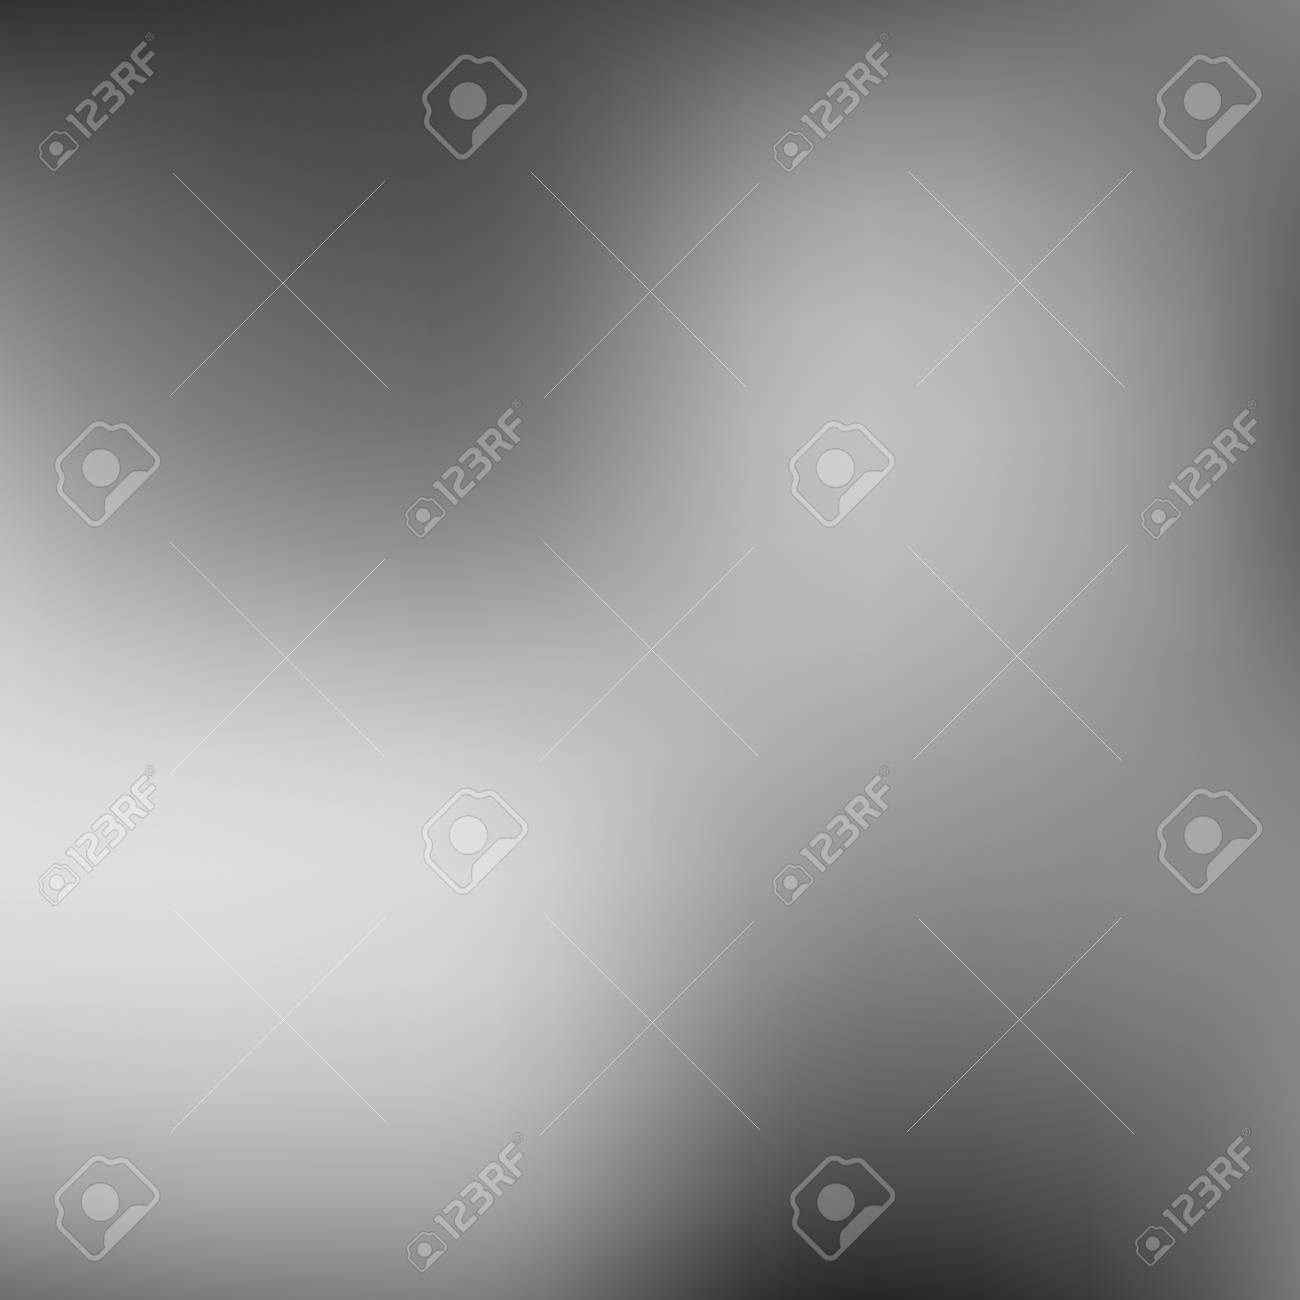 Abstract Grey Black And White Monochrome Blur Gradient Background